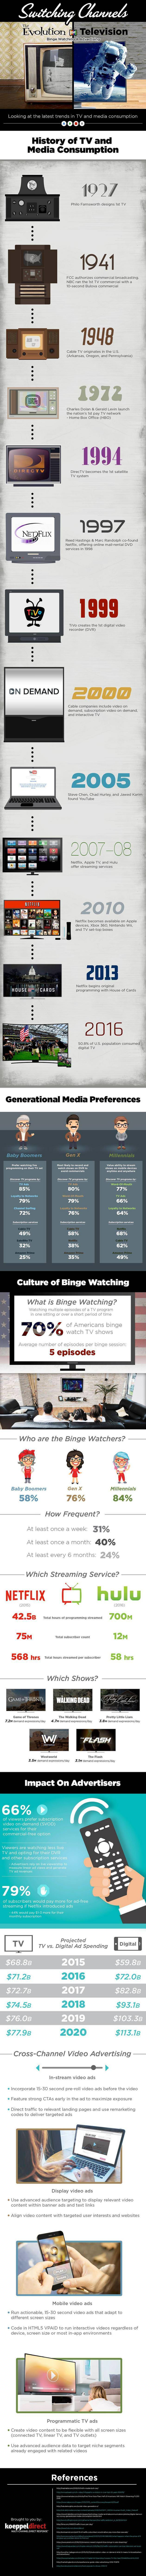 Switching Channels: The Evolution of Television